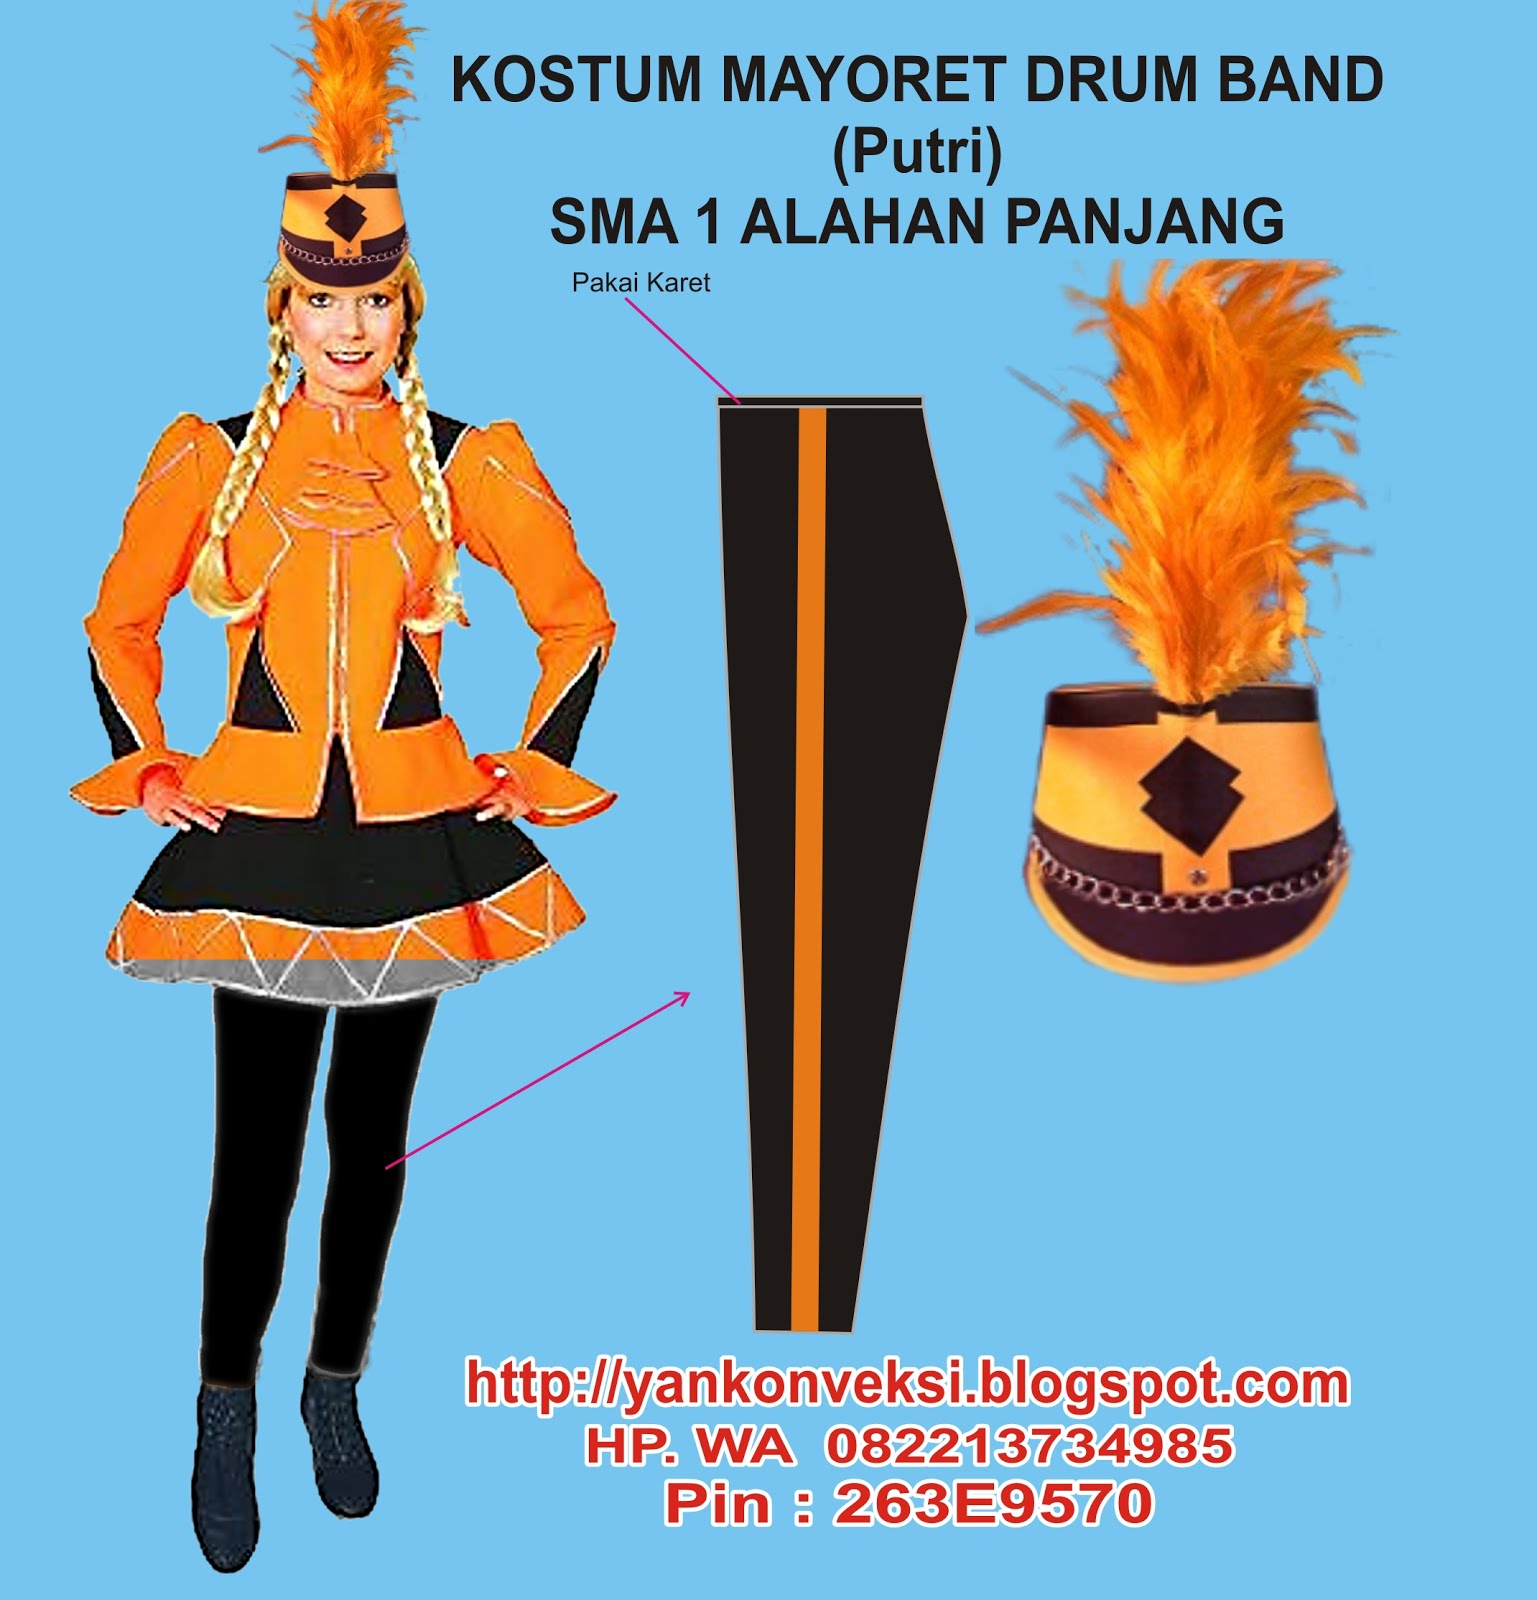 KOSTUM MAYORET DRUM BAND DAN MARCHING BAND